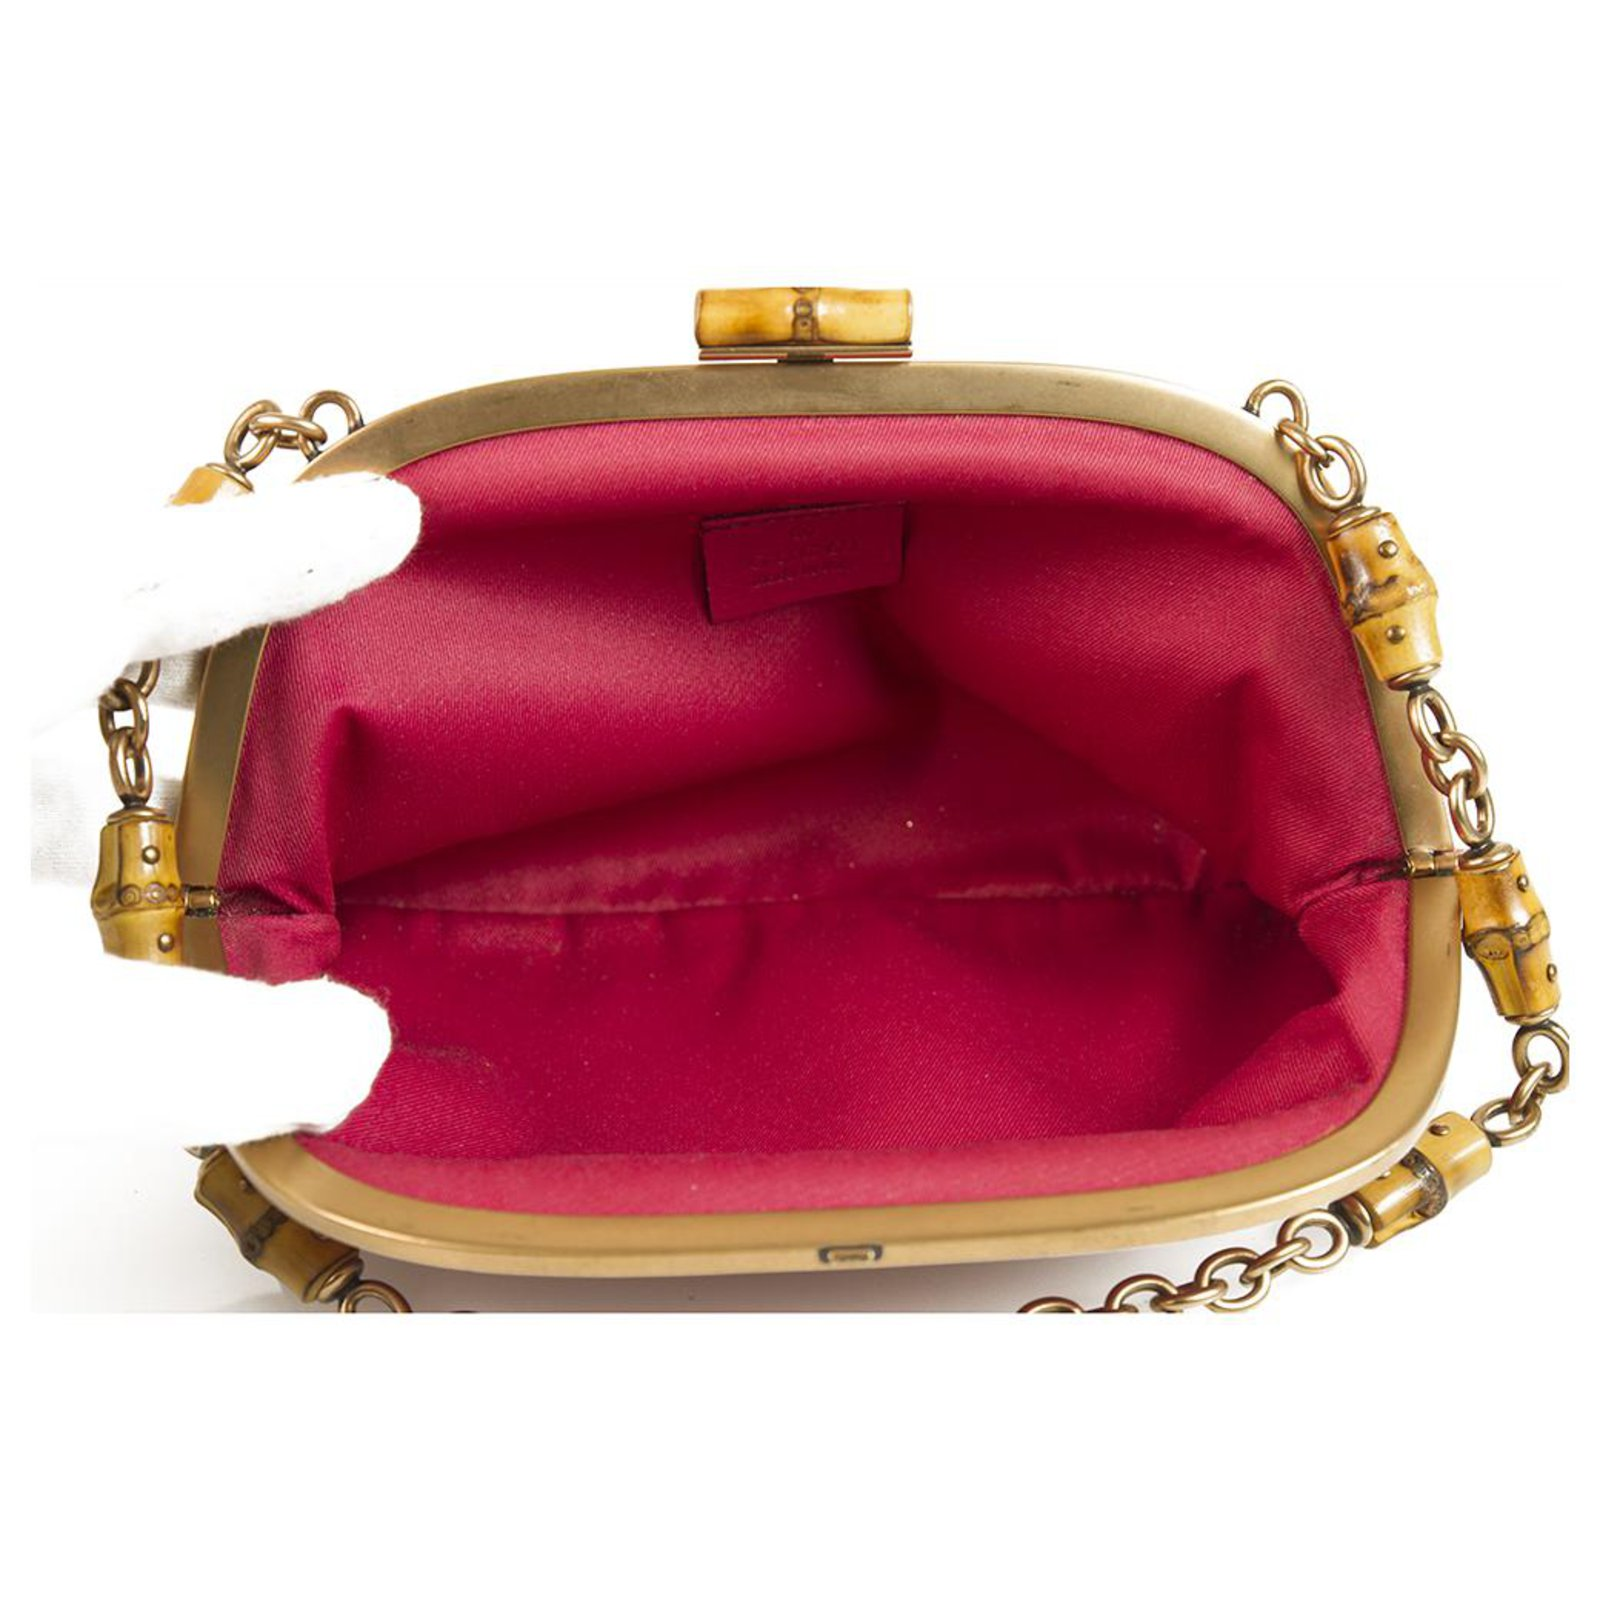 b4530aa487cdd6 Gucci GUCCI Pink Leather Bamboo and Chain Handle Bamboo Lock Frame Bag  Handbag Handbags Leather Fuschia ref.123447 - Joli Closet